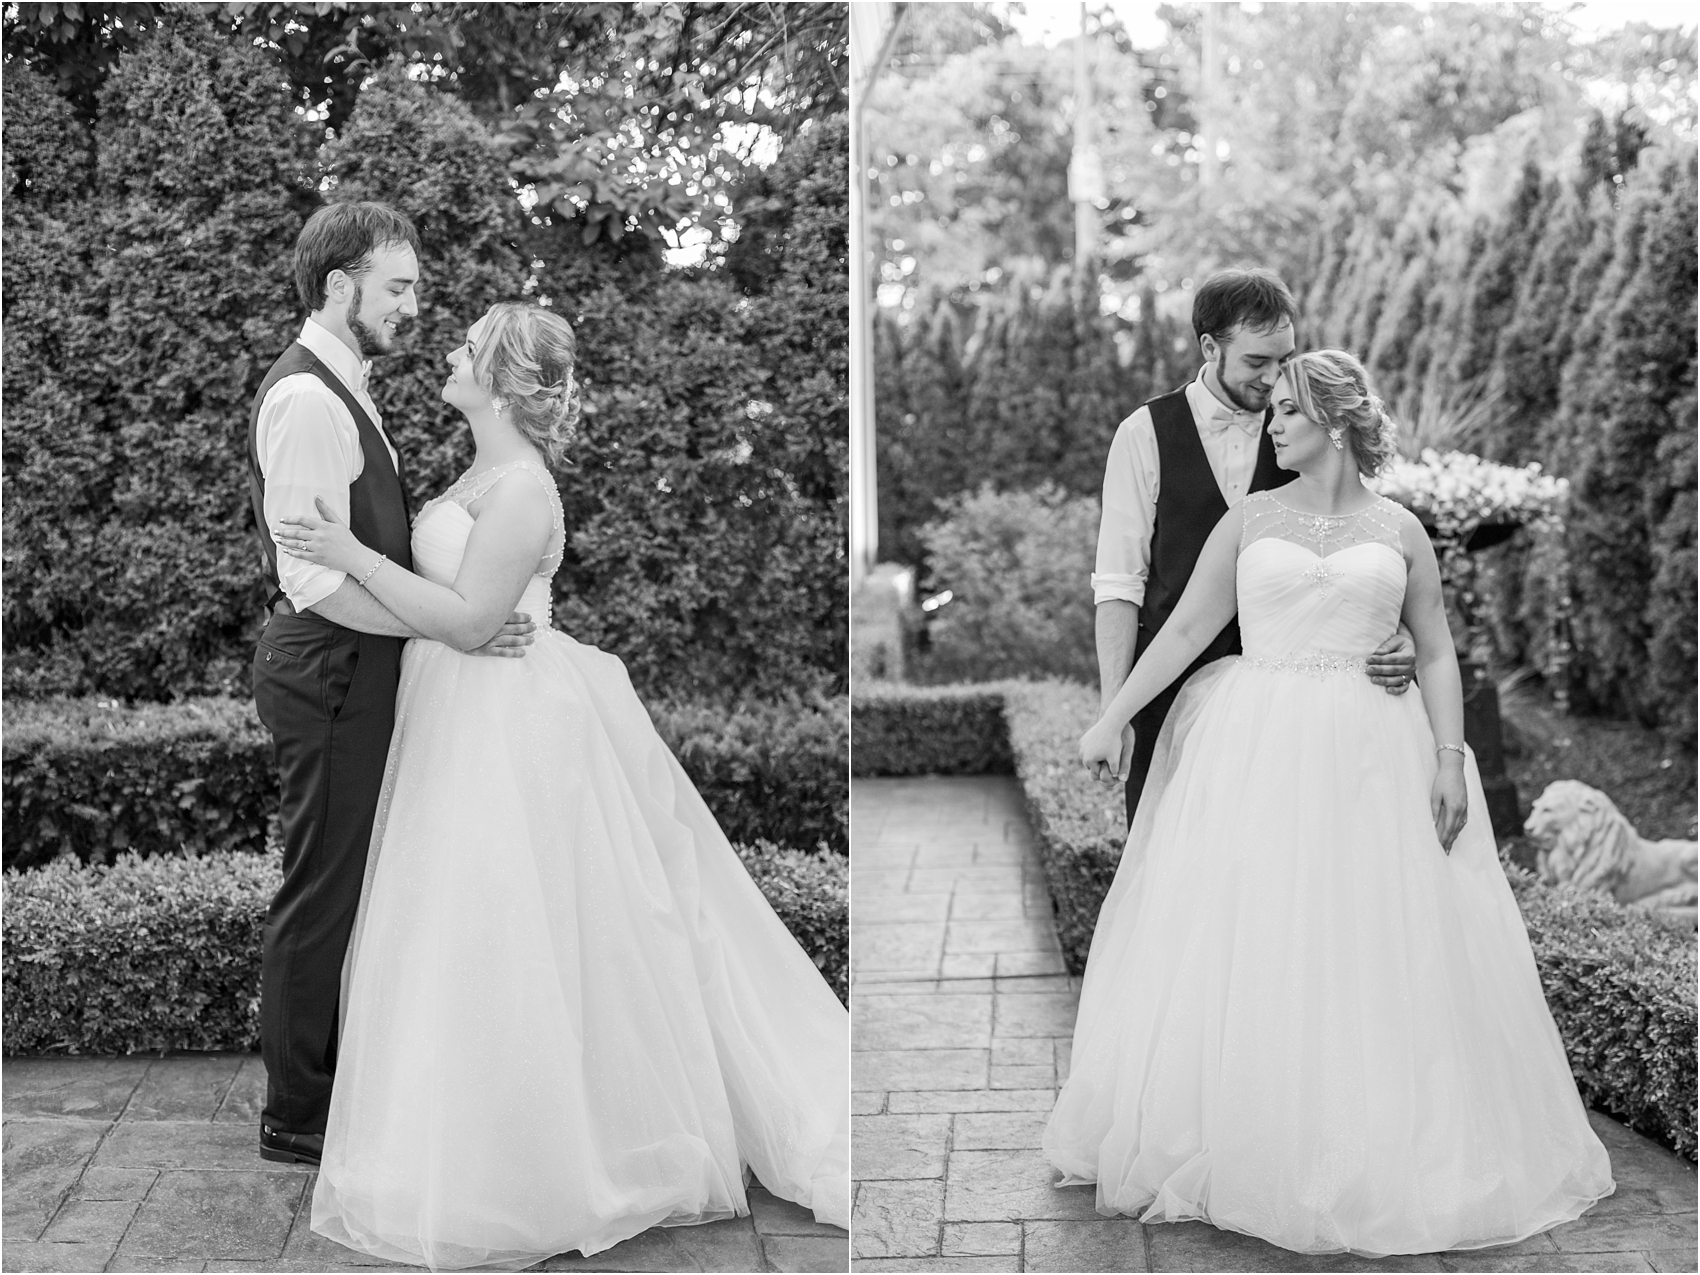 lord-of-the-rings-inspired-wedding-photos-at-crystal-gardens-in-howell-mi-by-courtney-carolyn-photography_0093.jpg